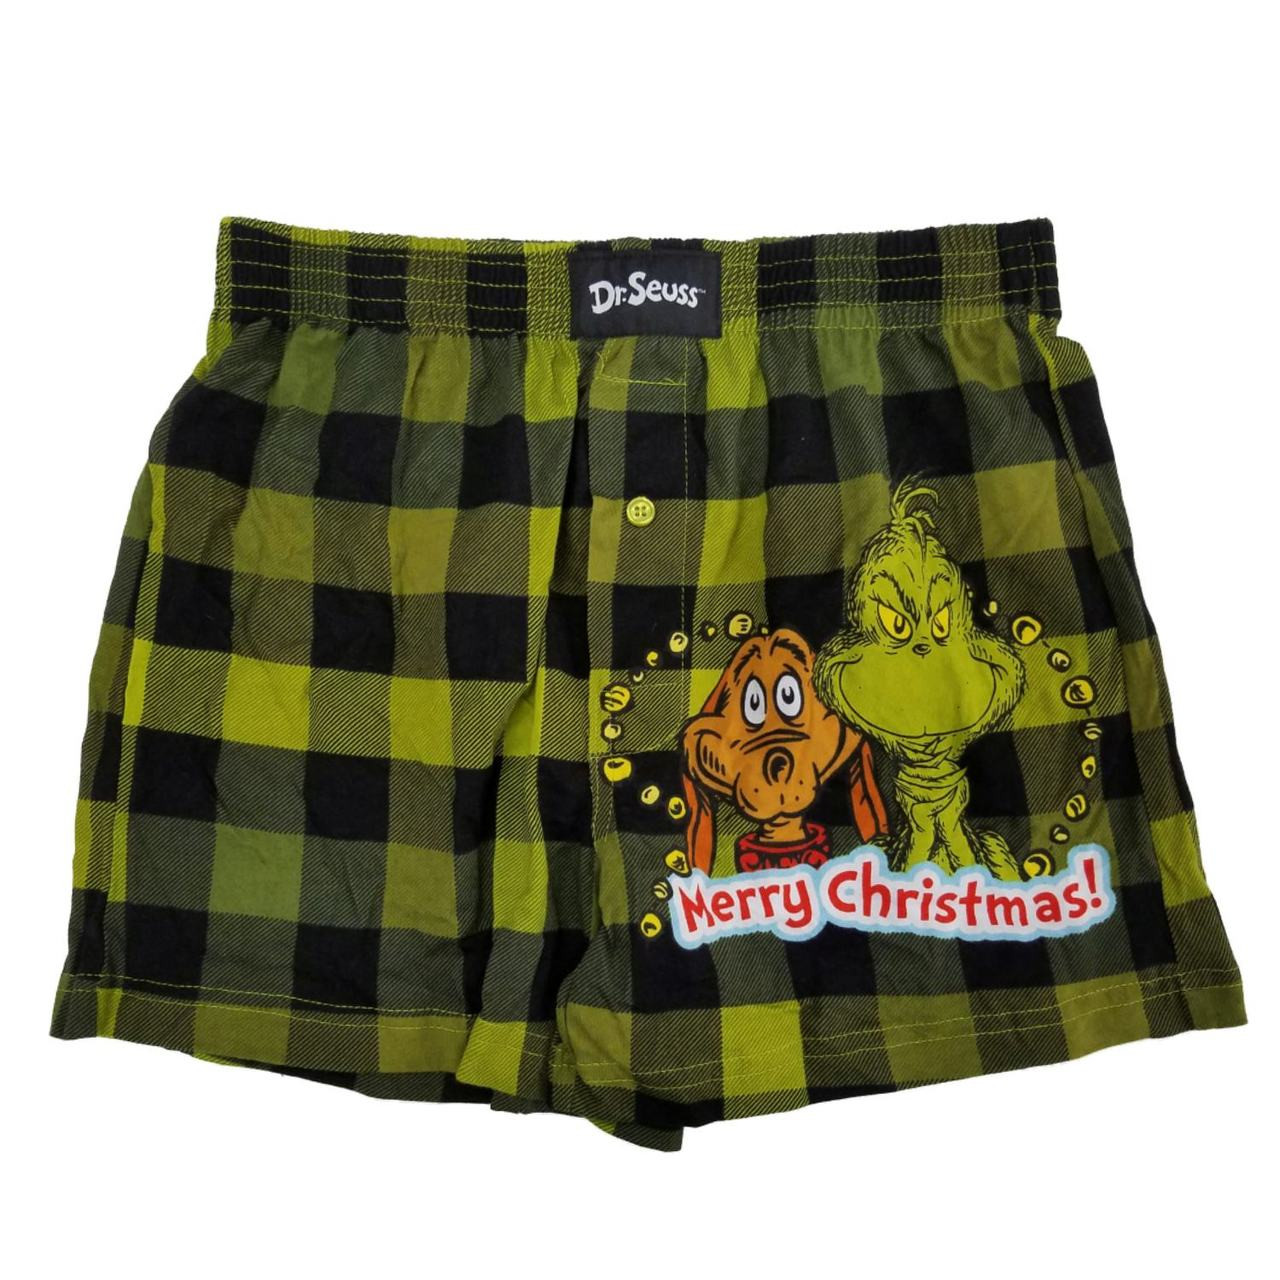 Dr Christmas Mens Boxer Brief Size S NEW Always Naughty The Grinch Seuss